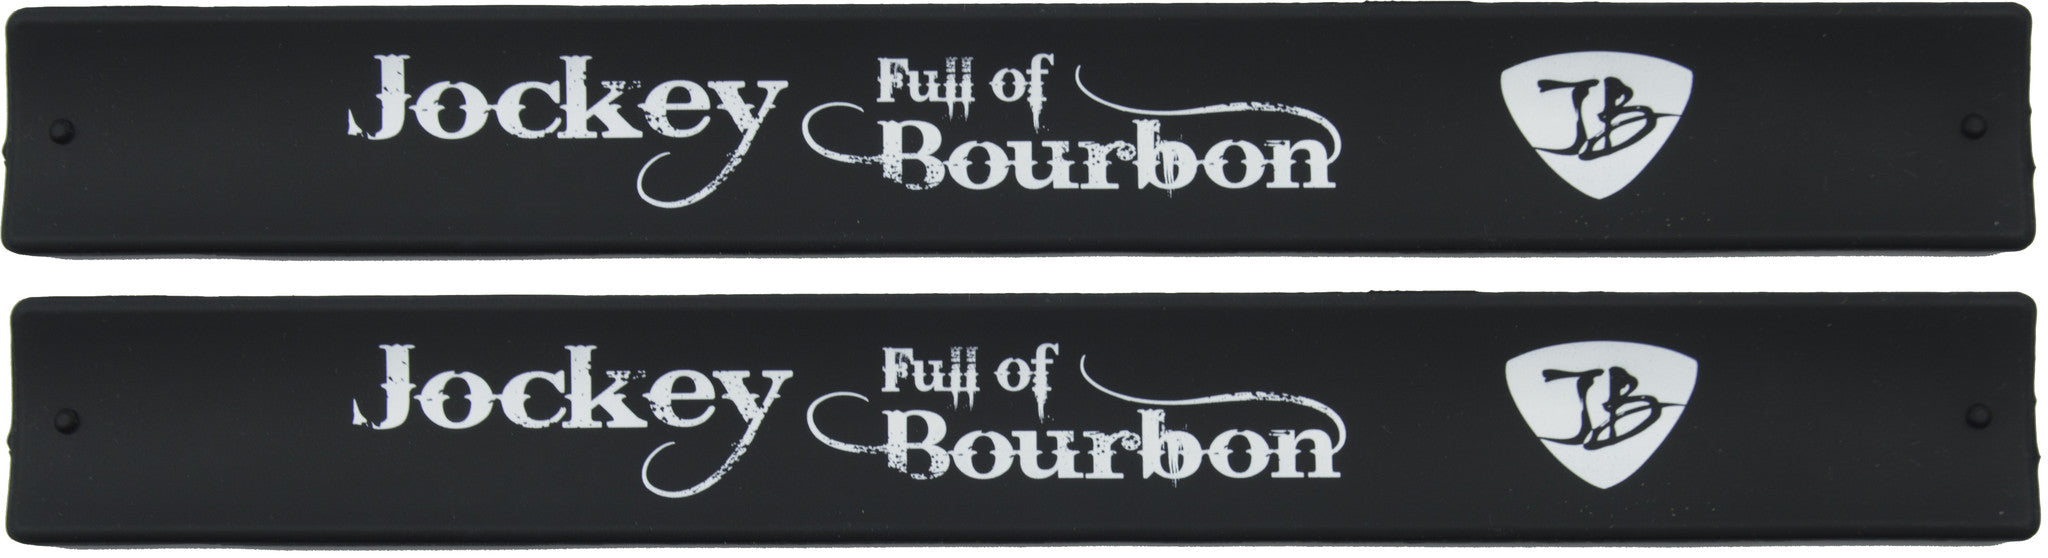 Joe Bonamassa Slap Bands - Jockey Full Of Bourbon